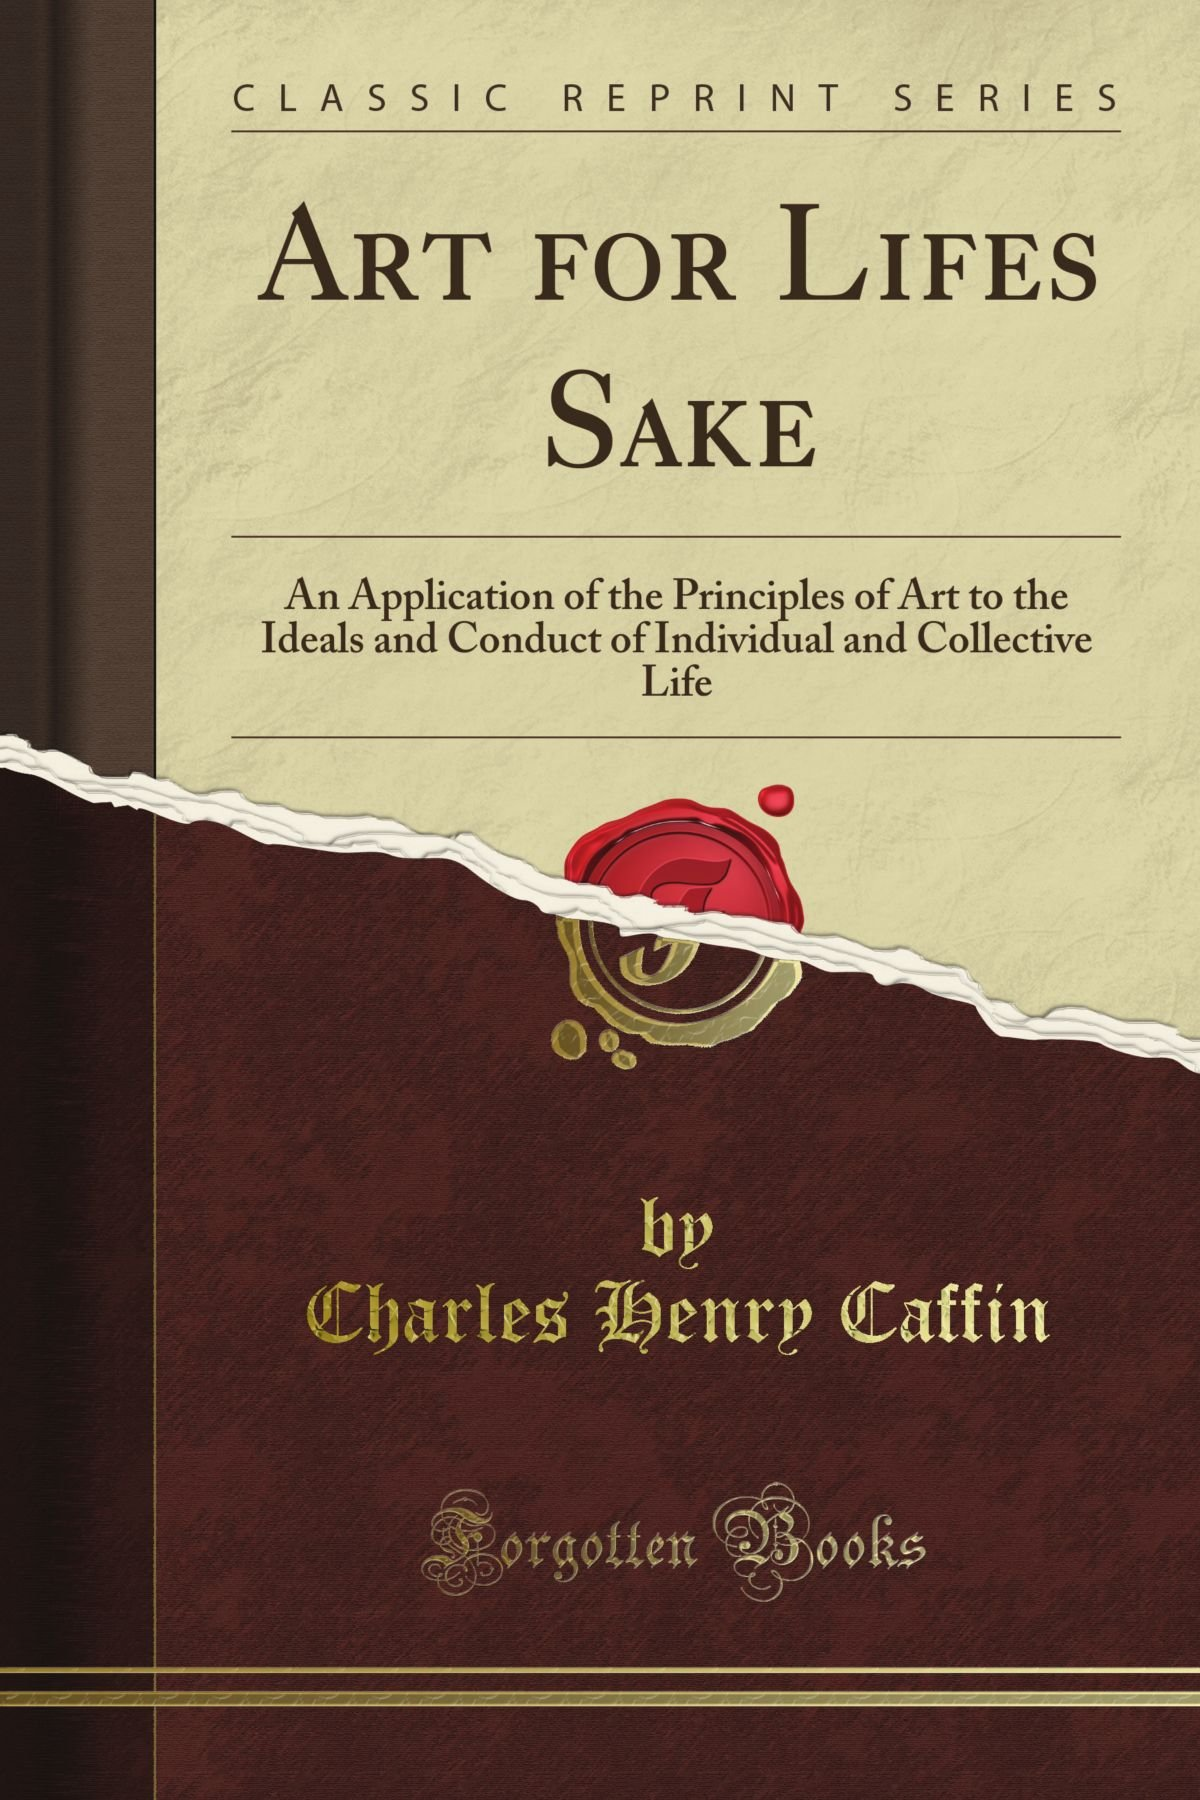 Art for Life's Sake: An Application of the Principles of Art to the Ideals and Conduct of Individual and Collective Life (Classic Reprint) PDF